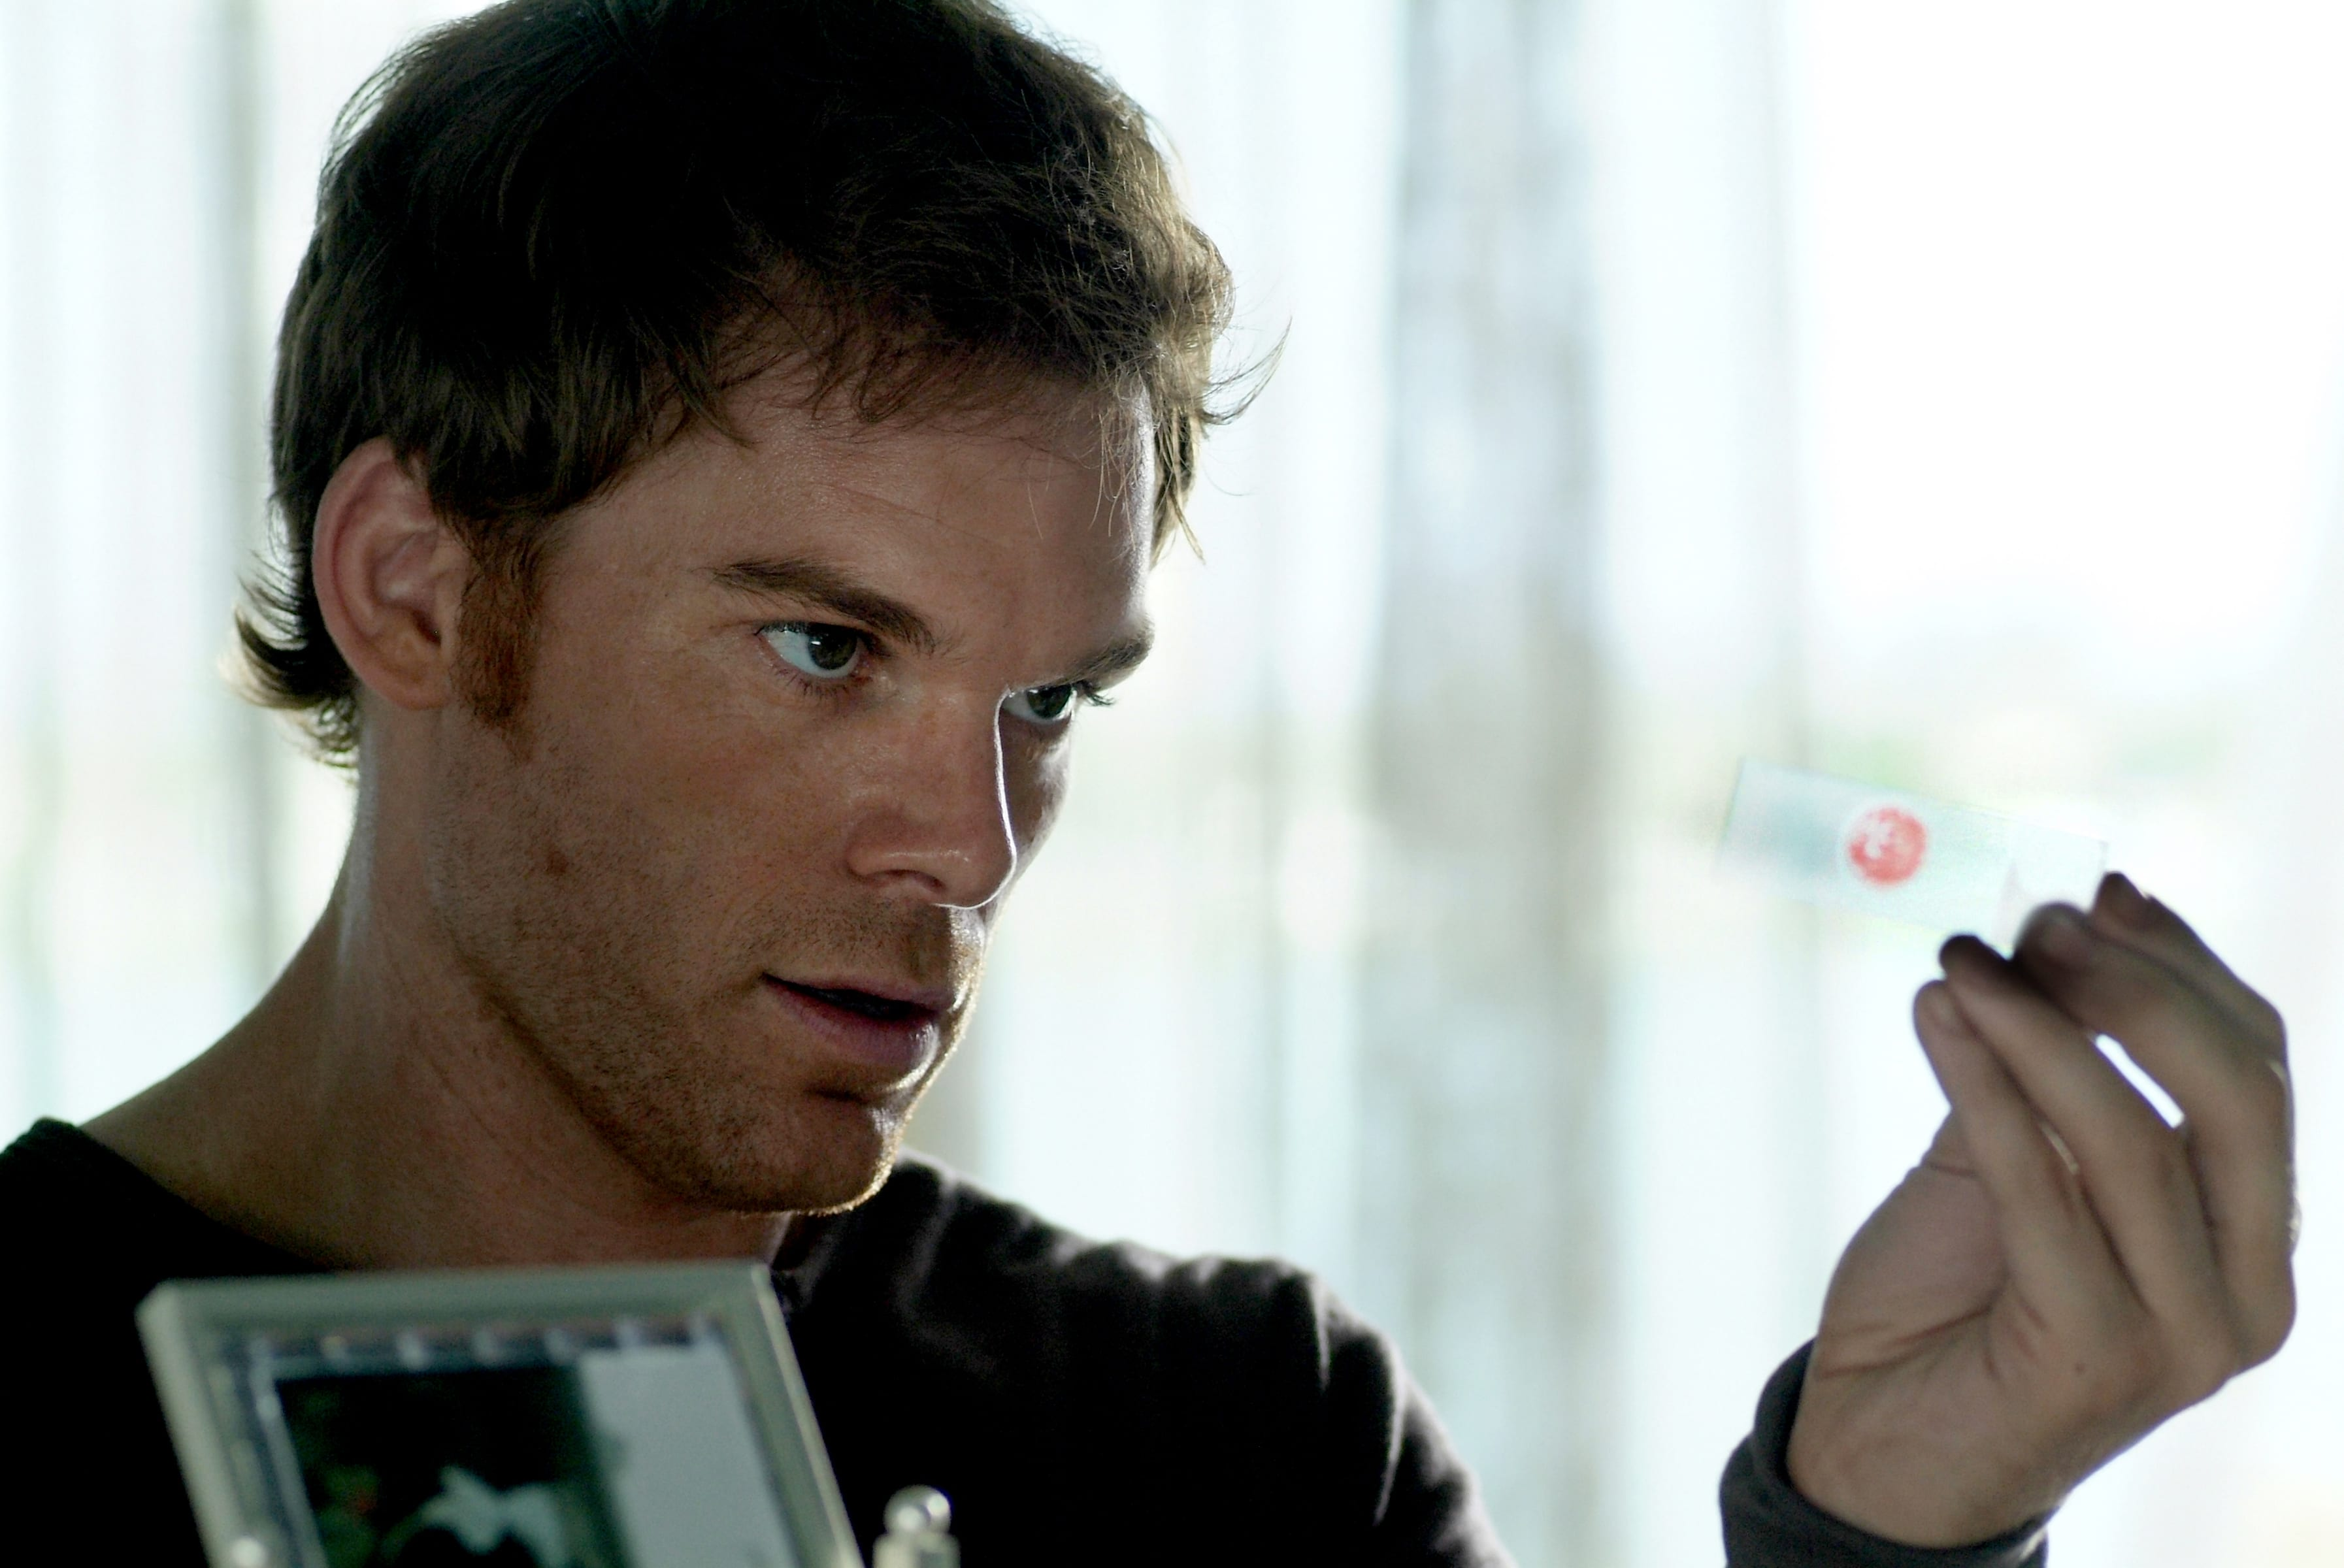 Did Michael C. Hall Just Hint at Even More 'Dexter' After the Revival?